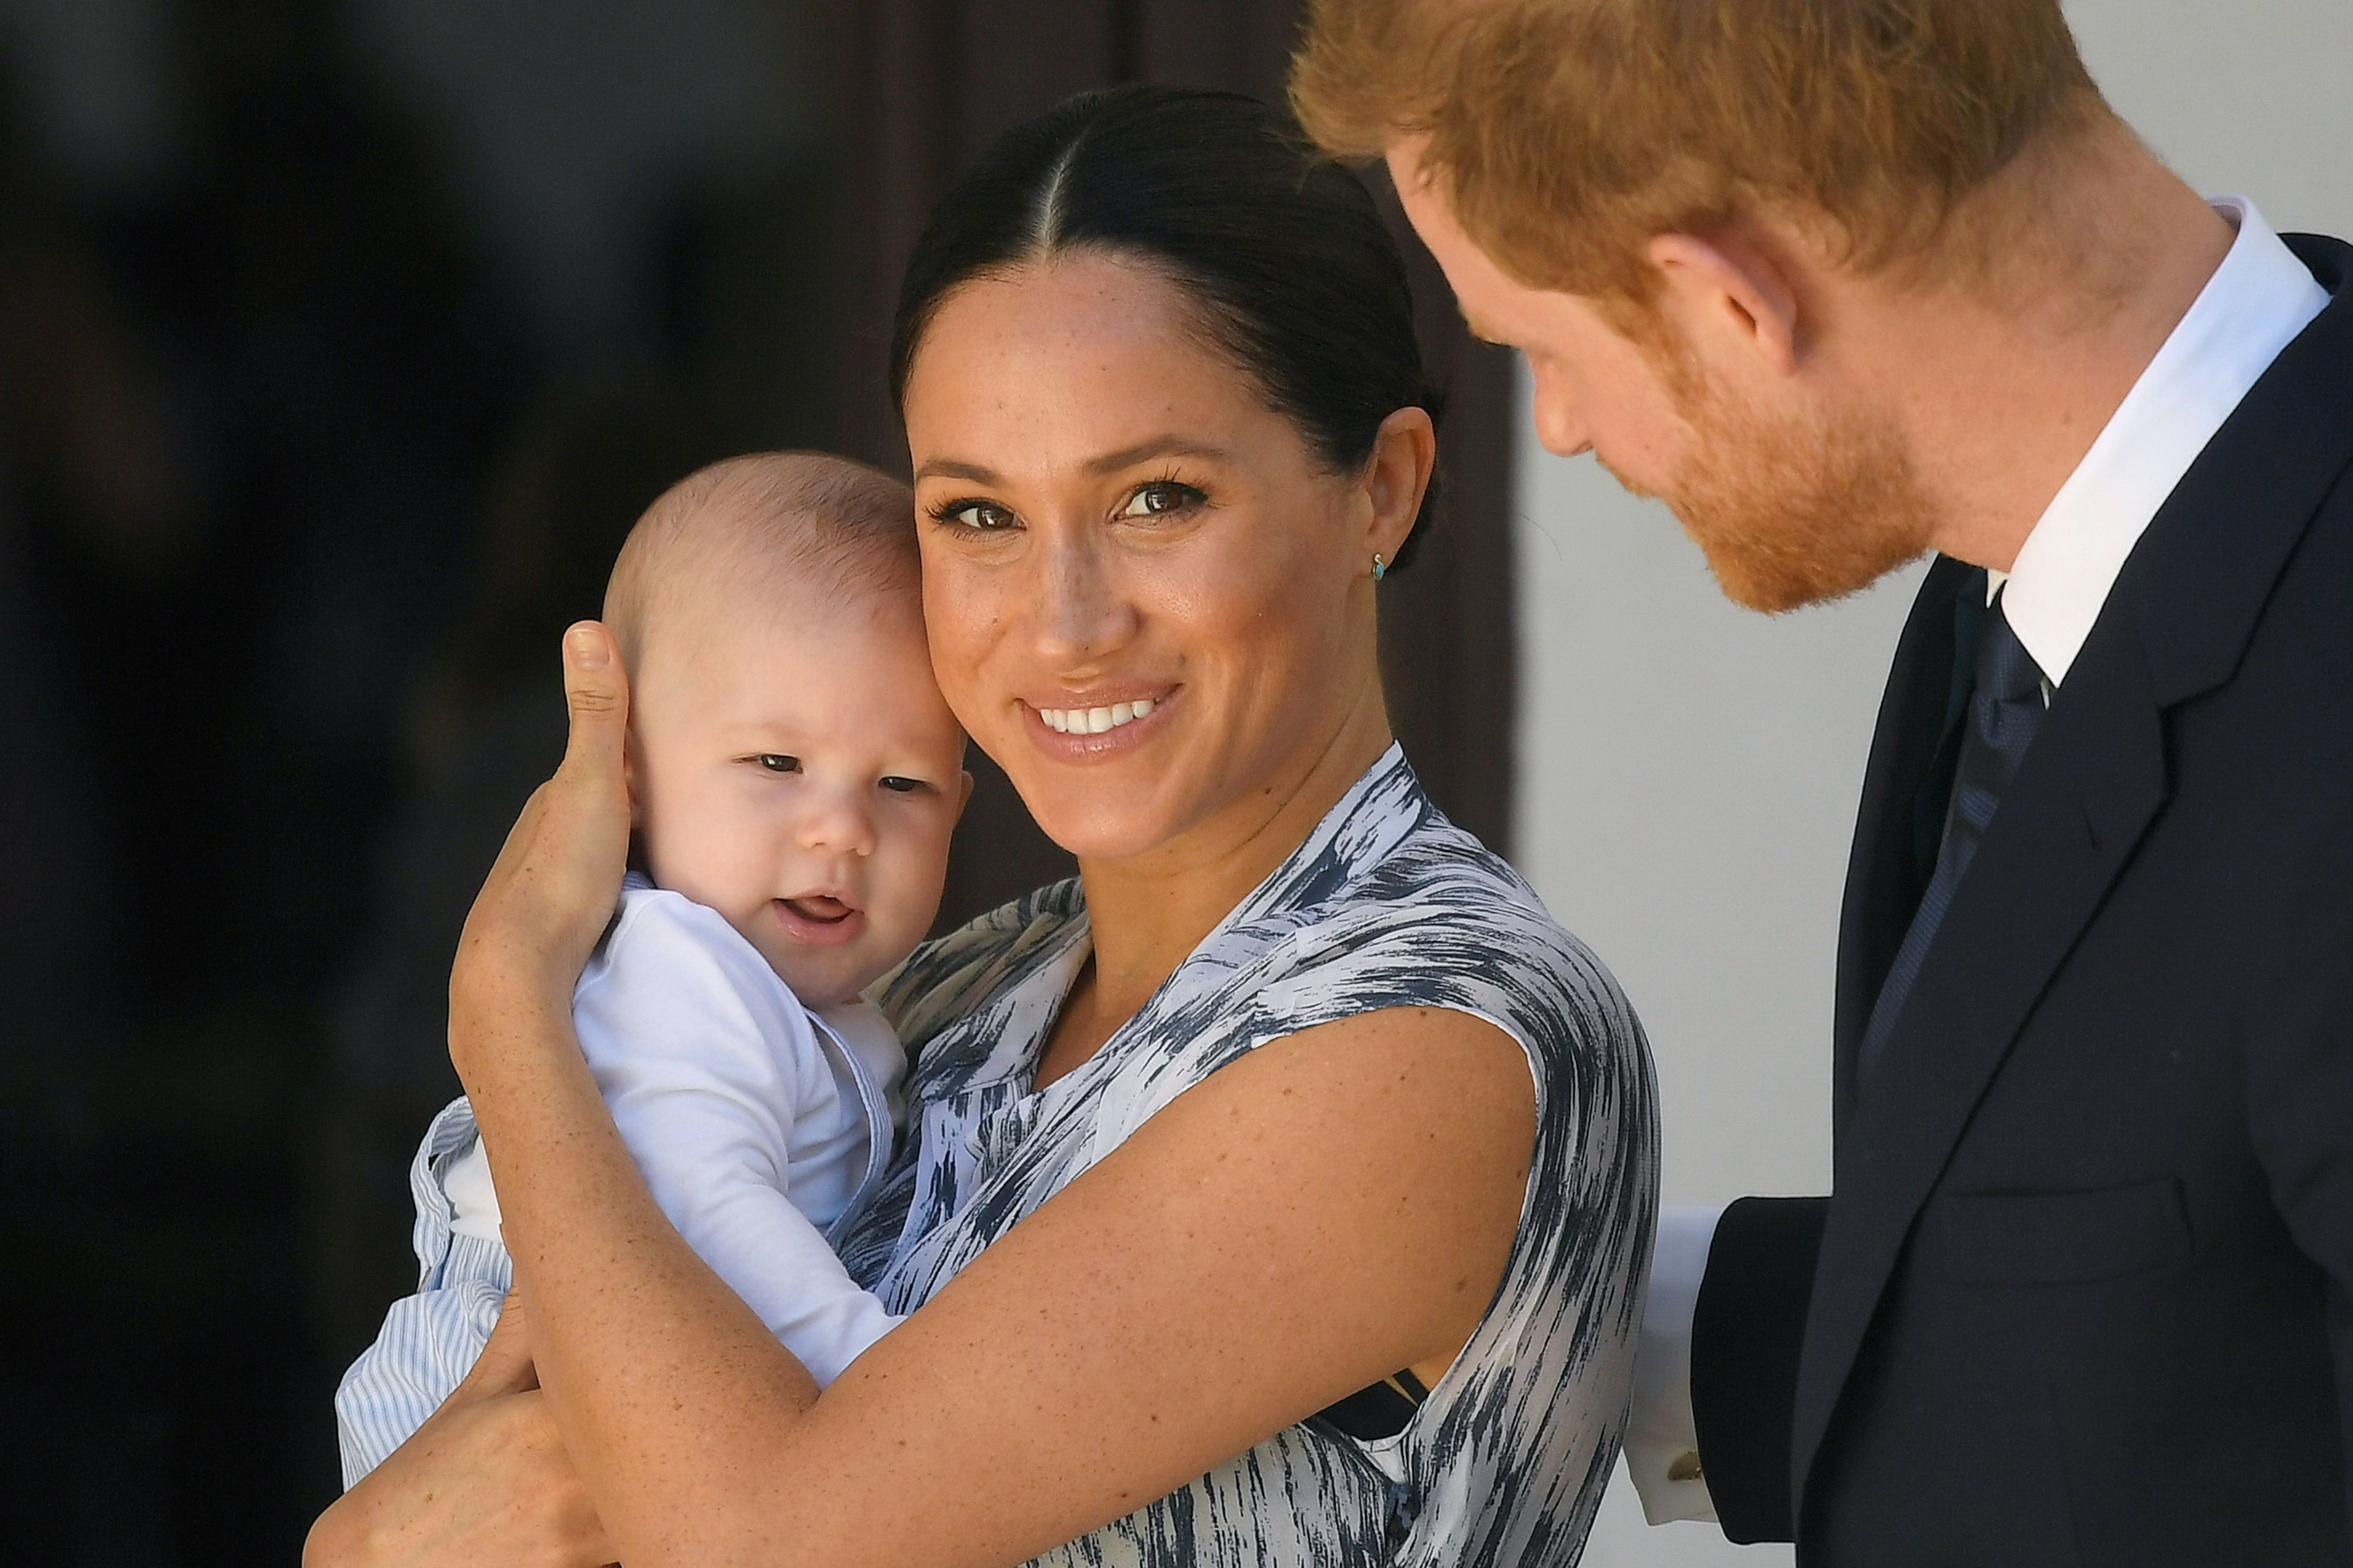 Archie Mountbatten-Windsor, Duchess Meghan, and Prince Harry at a meeting with Archbishop Desmond Tutu during their royal tour of South Africa on September 25, 2019, in Cape Town | Photo: Toby Melville - Pool/Getty Images